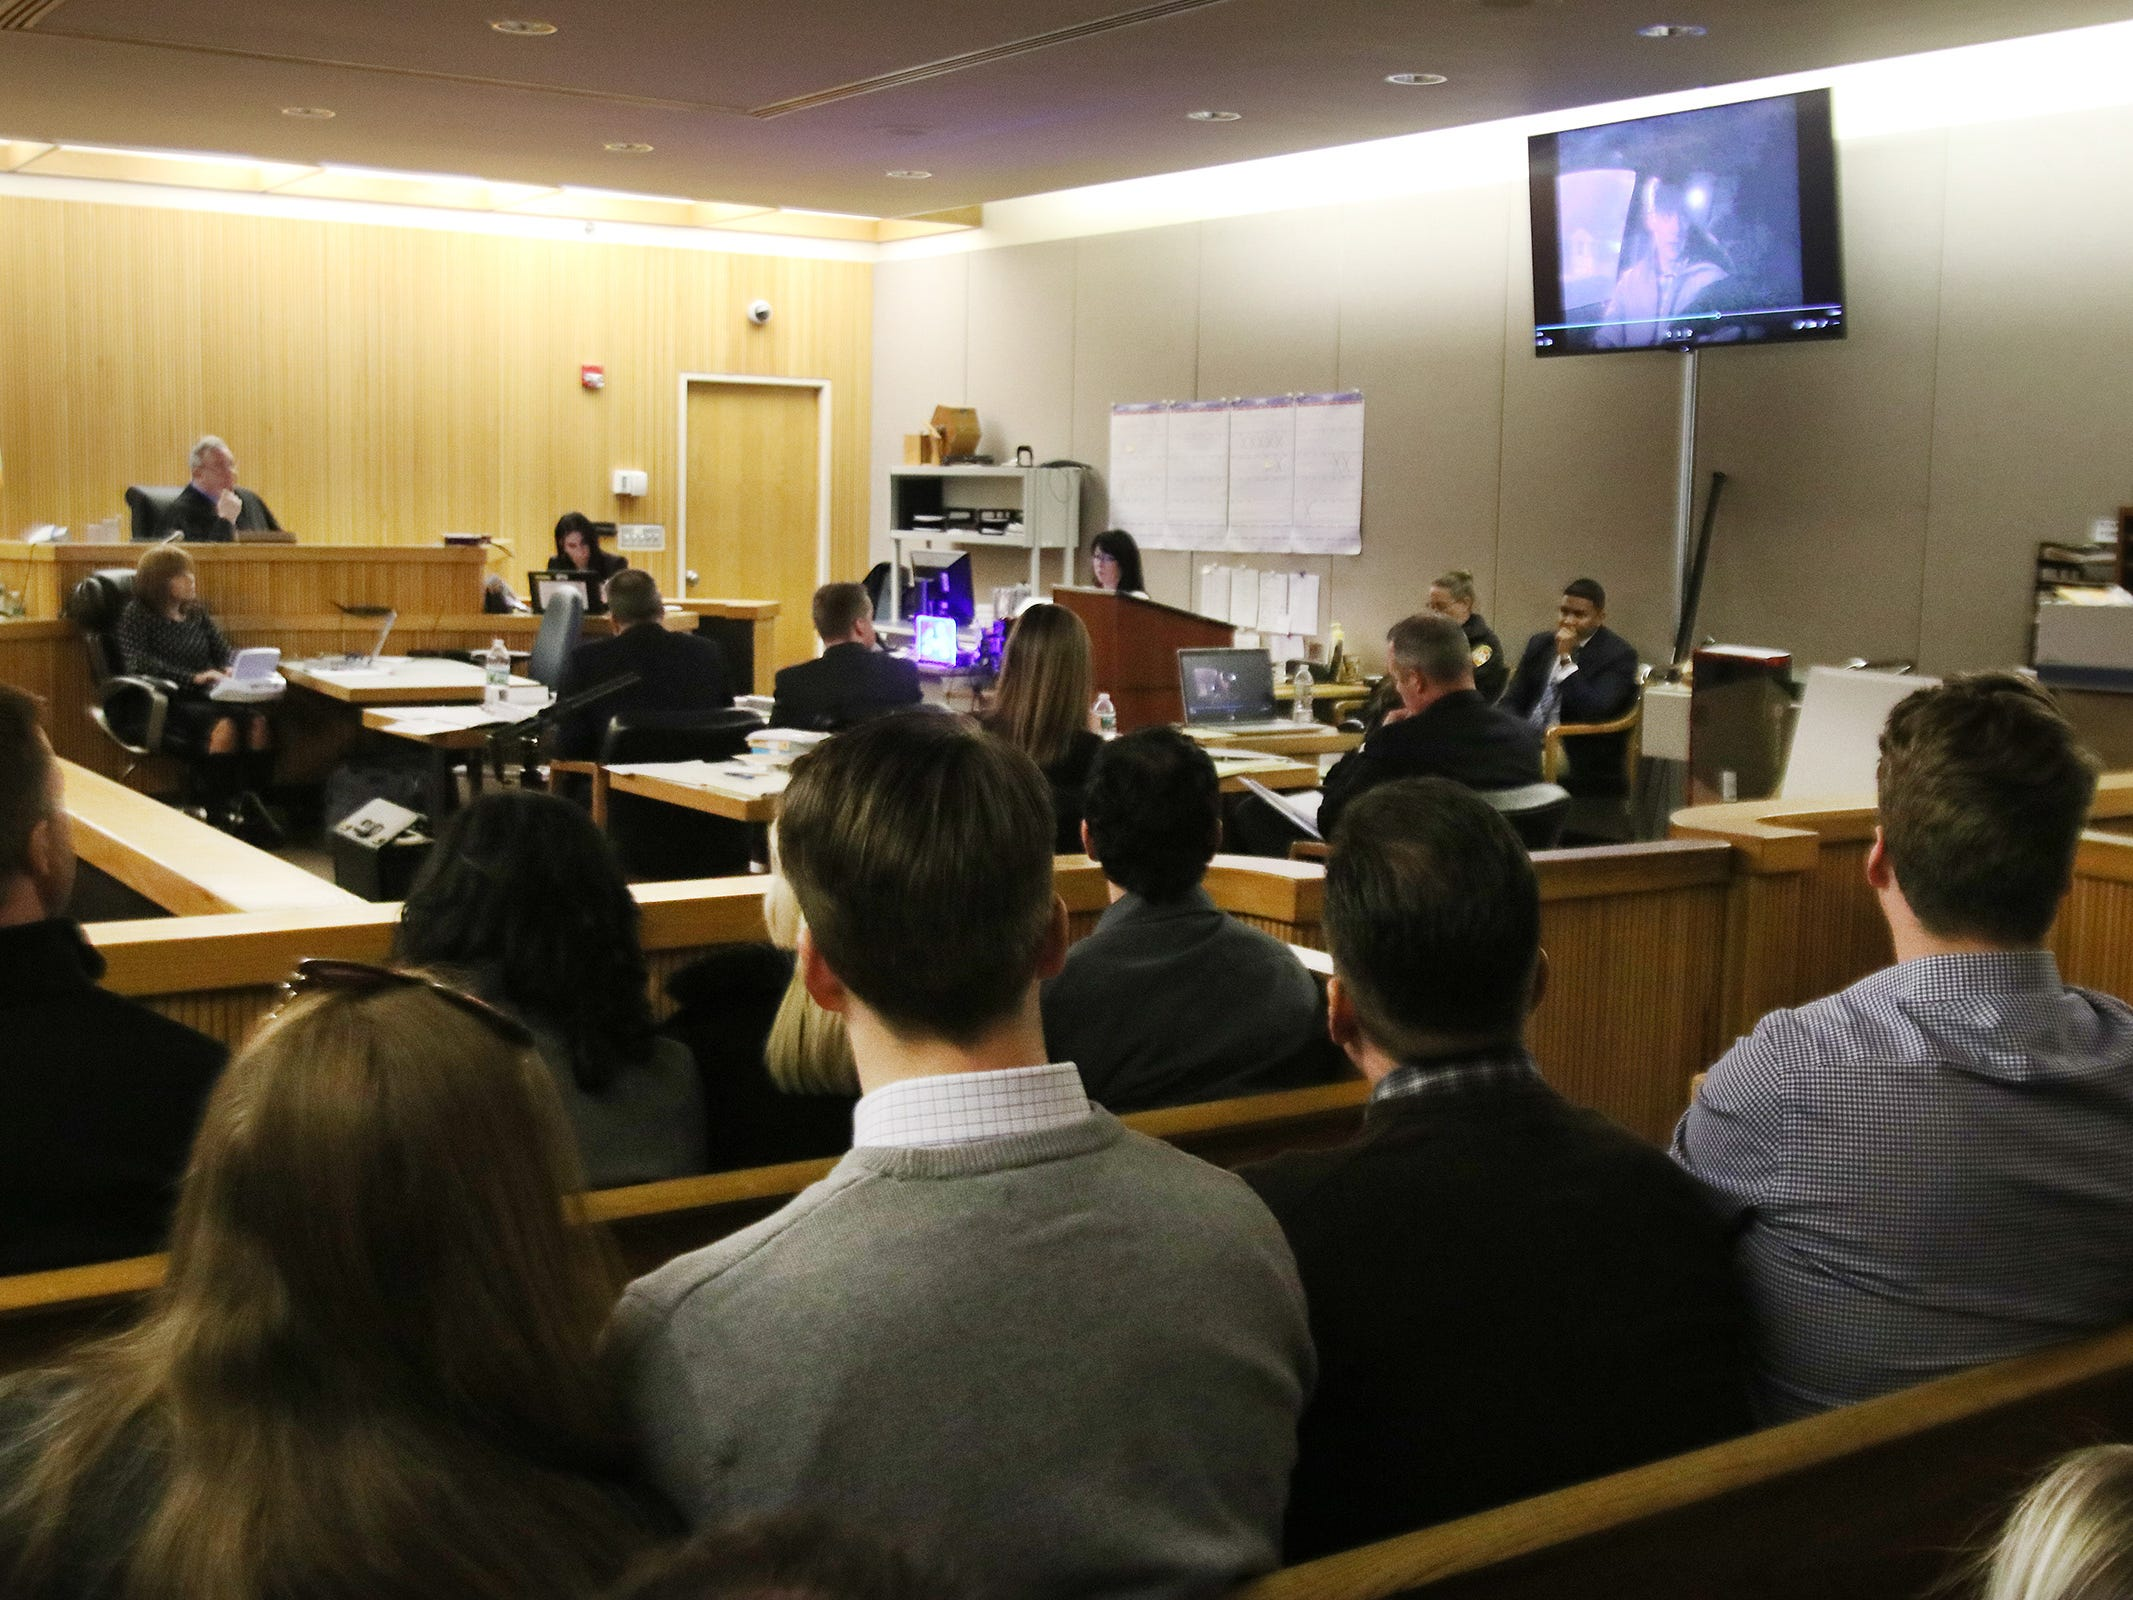 The McAtasney family watches from the gallery as a videotaped confession is played as Anthony Curry, who worked with police and recorded a confession by his friend, Liam McAtasney, testifies during the trial of Liam McAtasney, who is charged with the murder of former high school classmate, Sarah Stern, before Superior Court Judge Richard W. English at the Monmouth County Courthouse in Freehold, NJ Thursday, February 7, 2019.